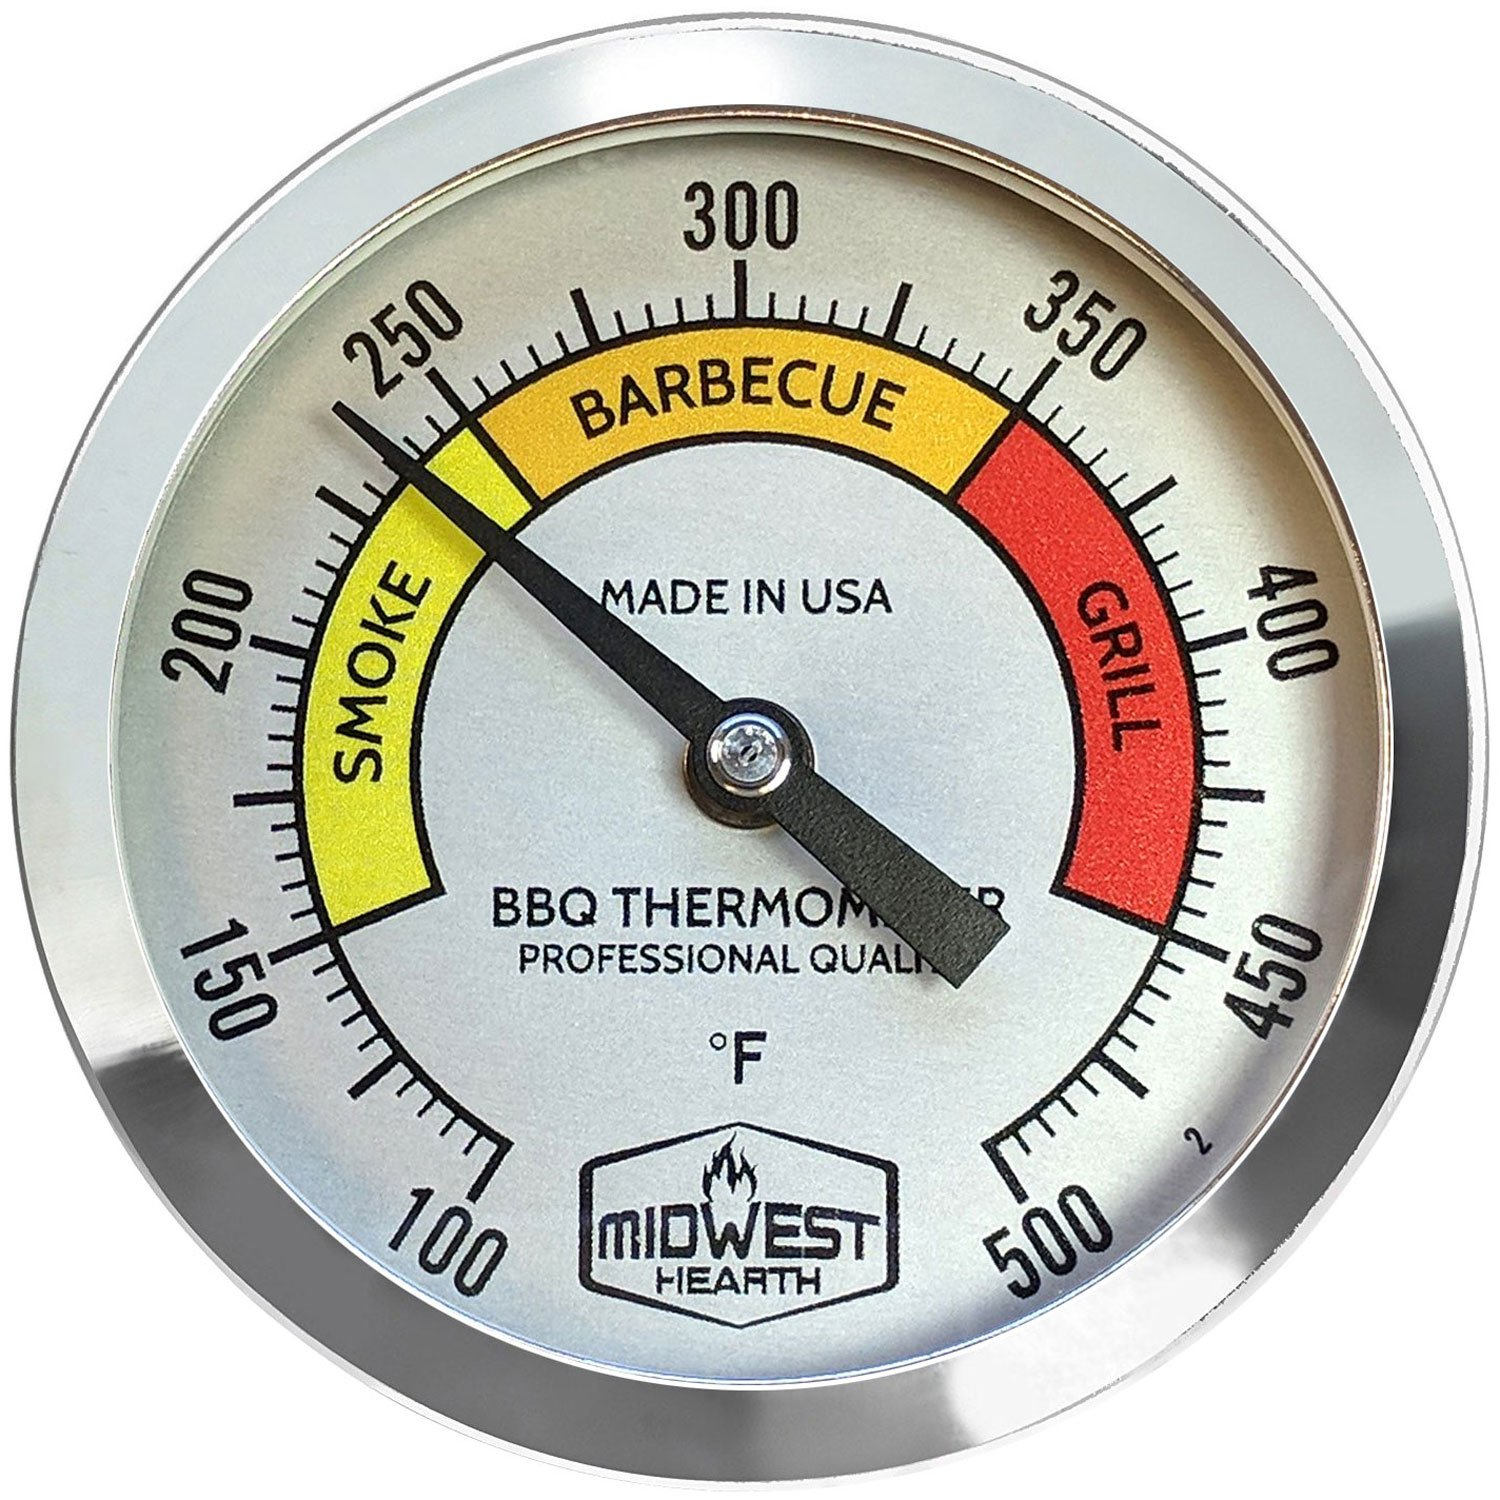 Midwest Hearth BBQ Smoker Thermometer for Barbecue Grill, Pit, Barrel 3'' Dial (4'' Stem Length, Color Dial) by Midwest Hearth